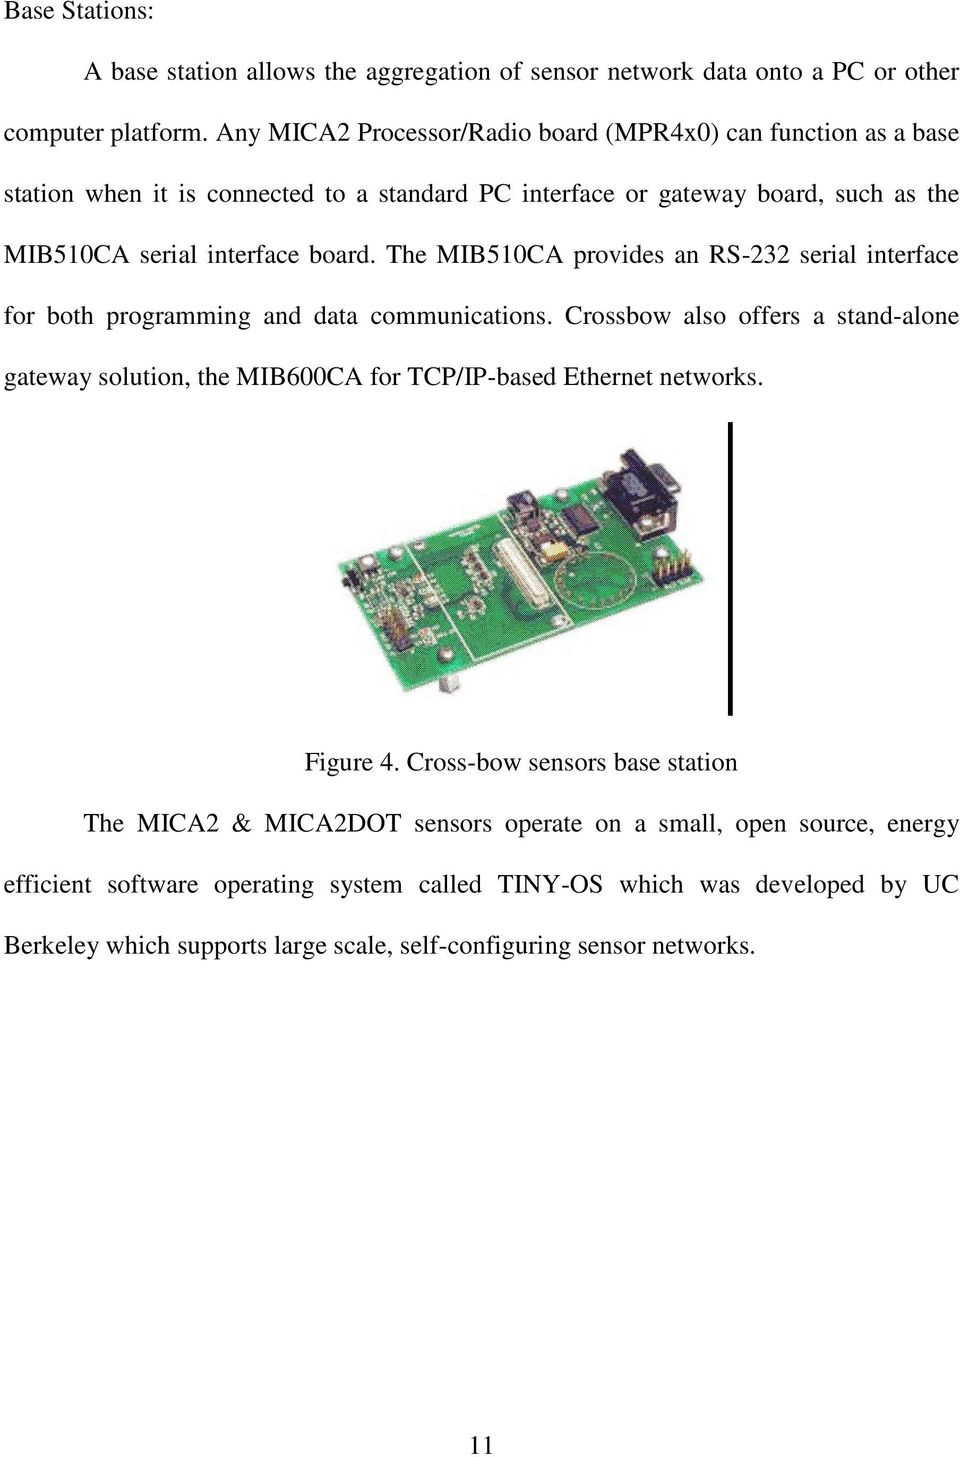 Data Logging Supervisory Control In Wireless Sensor Networks Hardware Circuit Of Pcbased Logger Is Designed Around Analog The Mib510ca Provides An Rs 232 Serial Interface For Both Programming And Communications